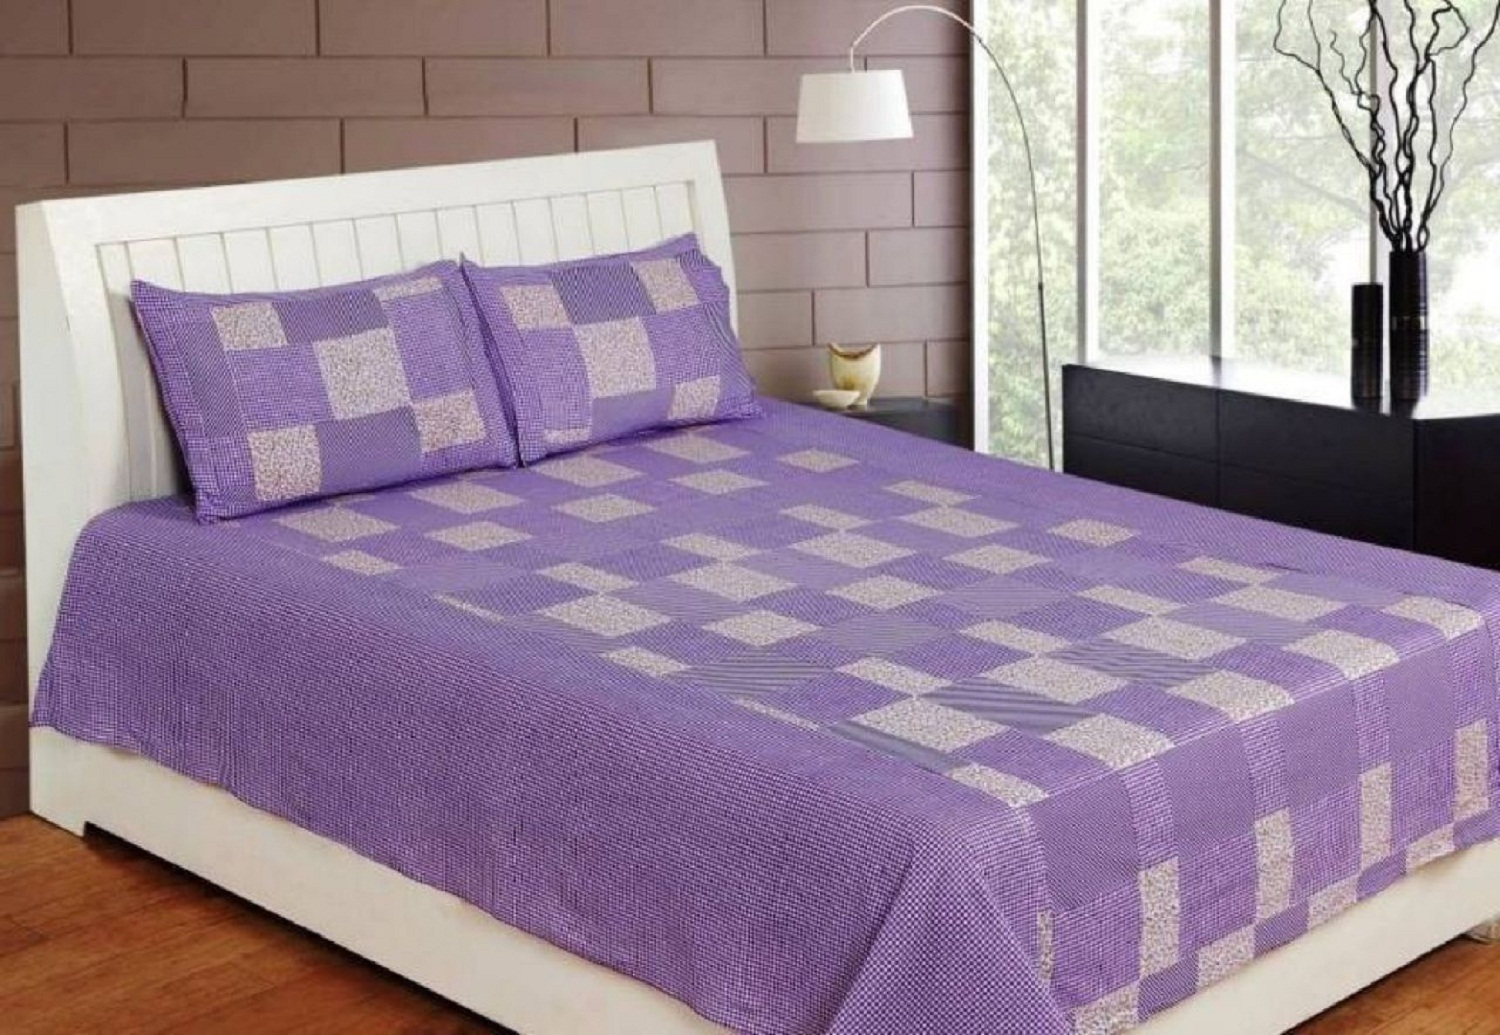 https://img1a.flixcart.com/images-jjabekw0/2018/6/7/bedsheet/COTTON-QUEEN-16/IMAF6W3THQWG4UJR.jpg